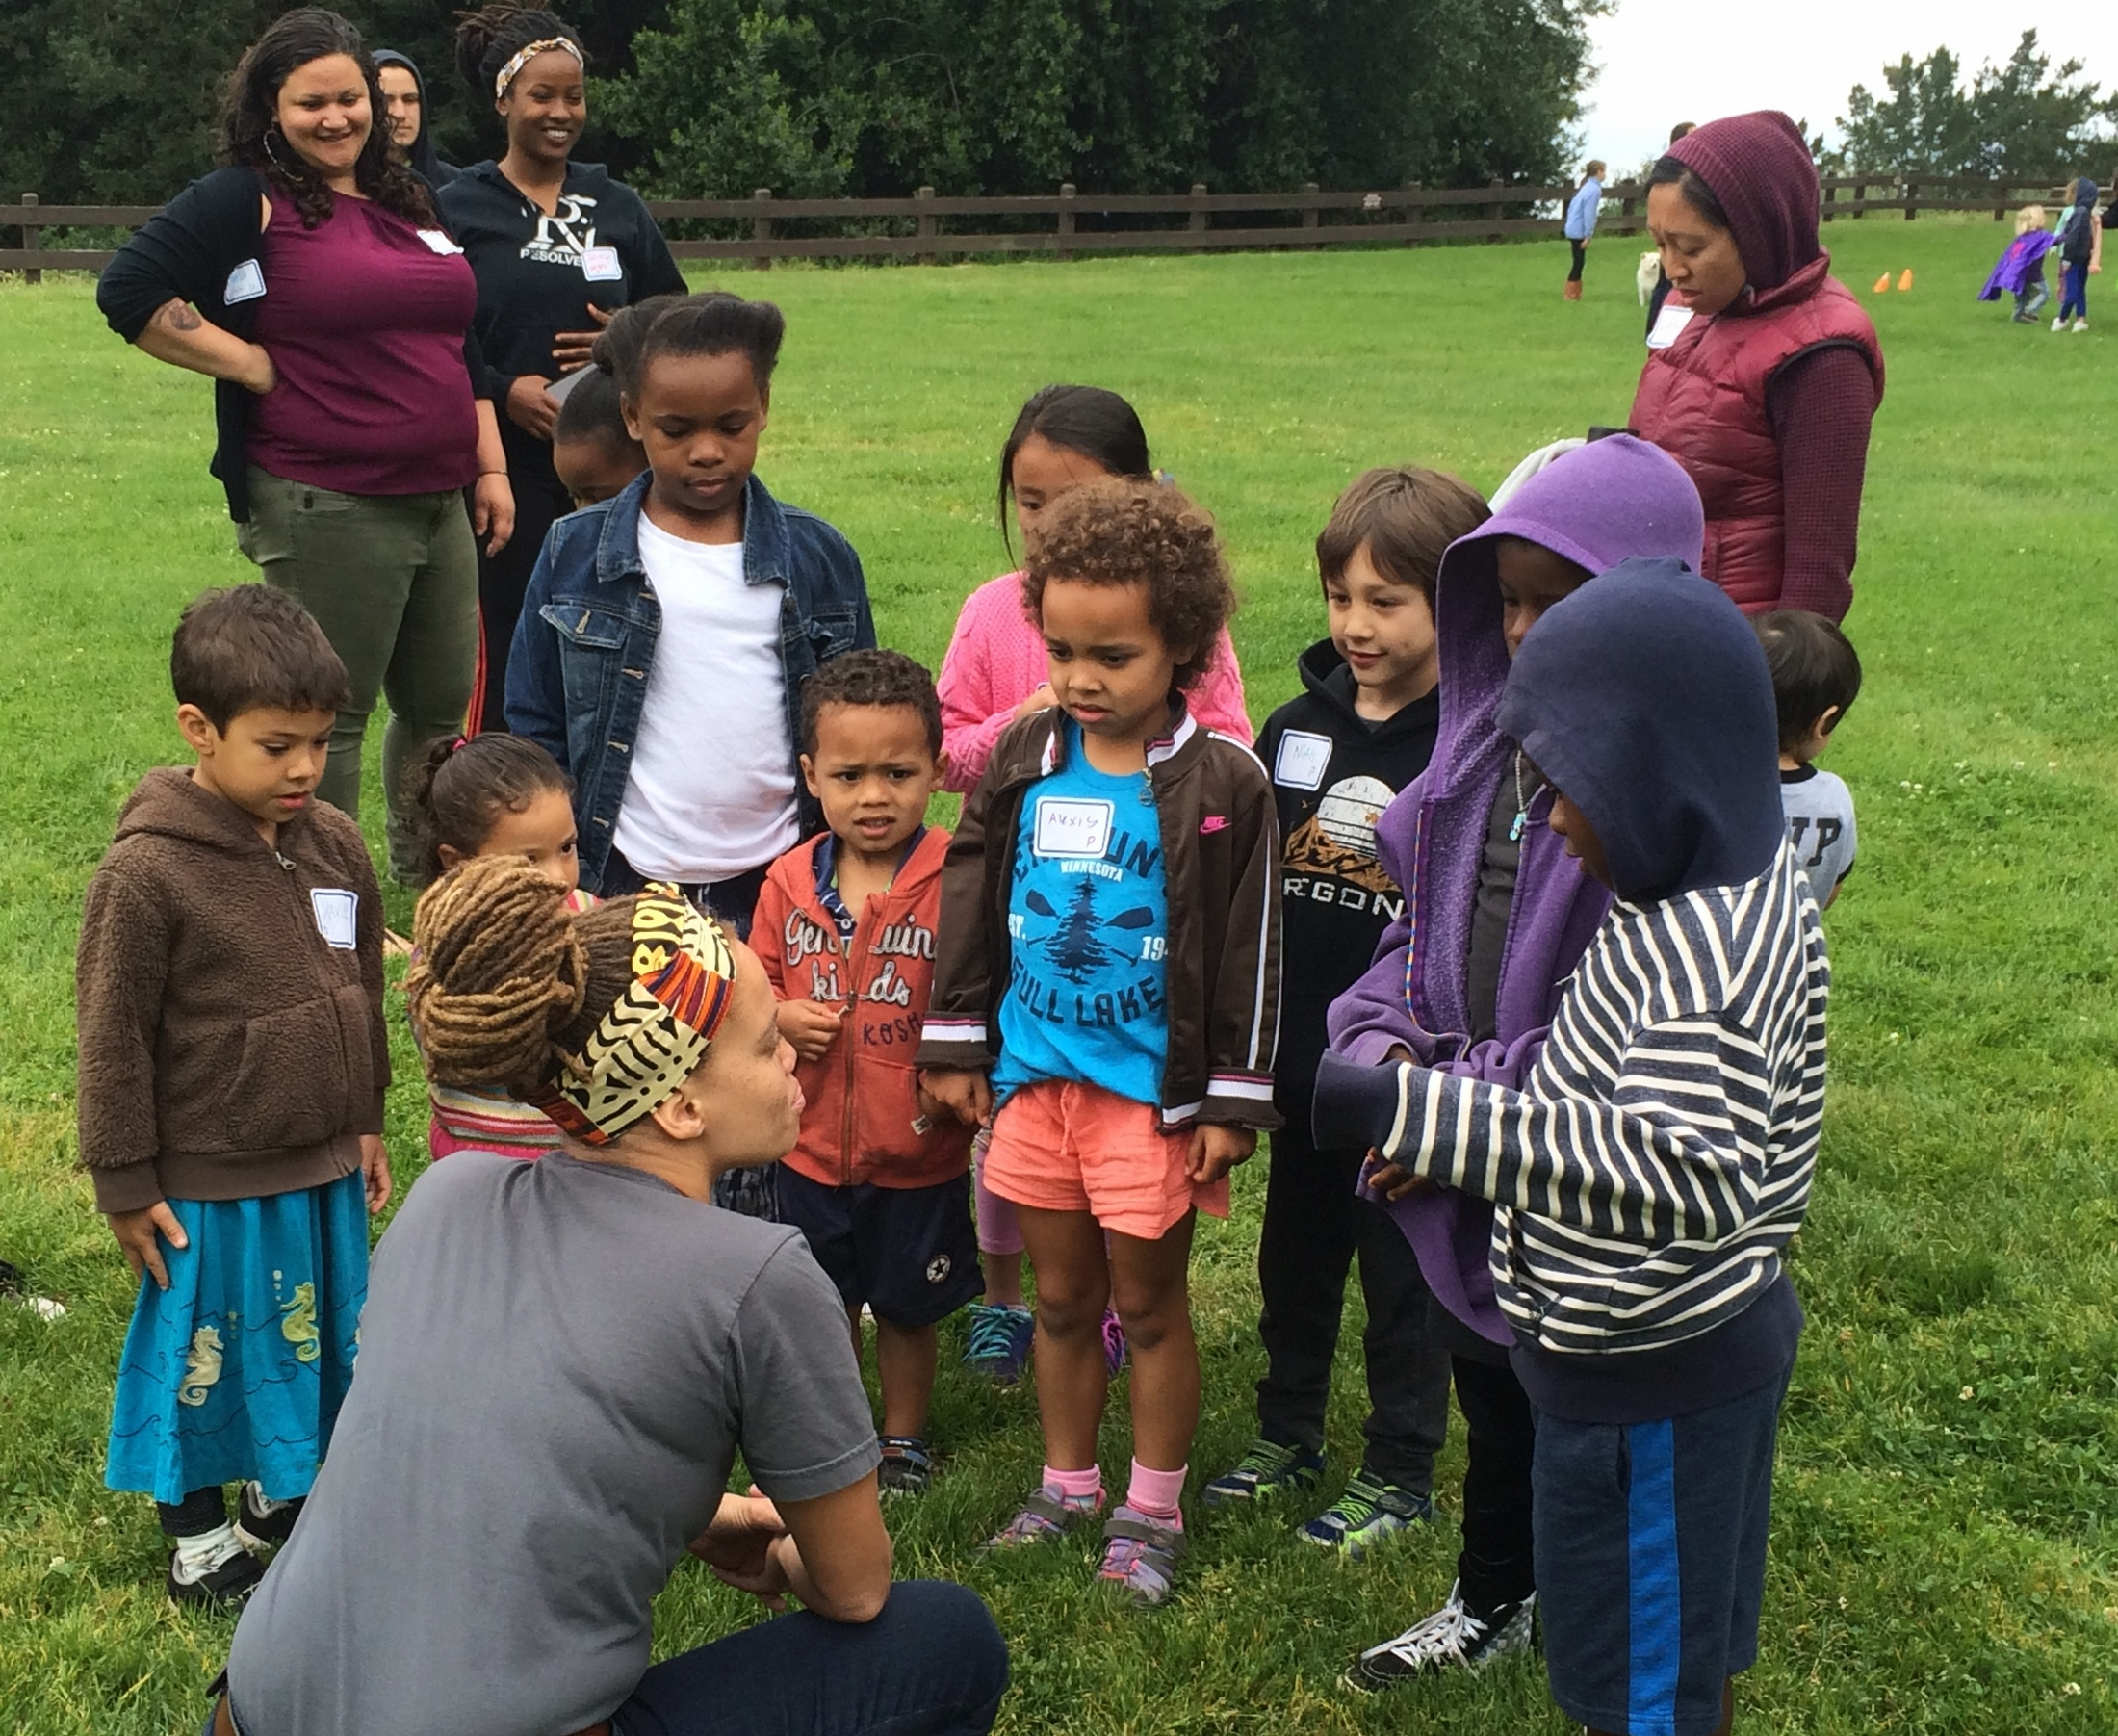 """Shayna Cureton, Director of Abundant Beginnings, engaging in dialogue with children at the May 14th """"Play, Power, and Privilege Teach-In for Children""""."""